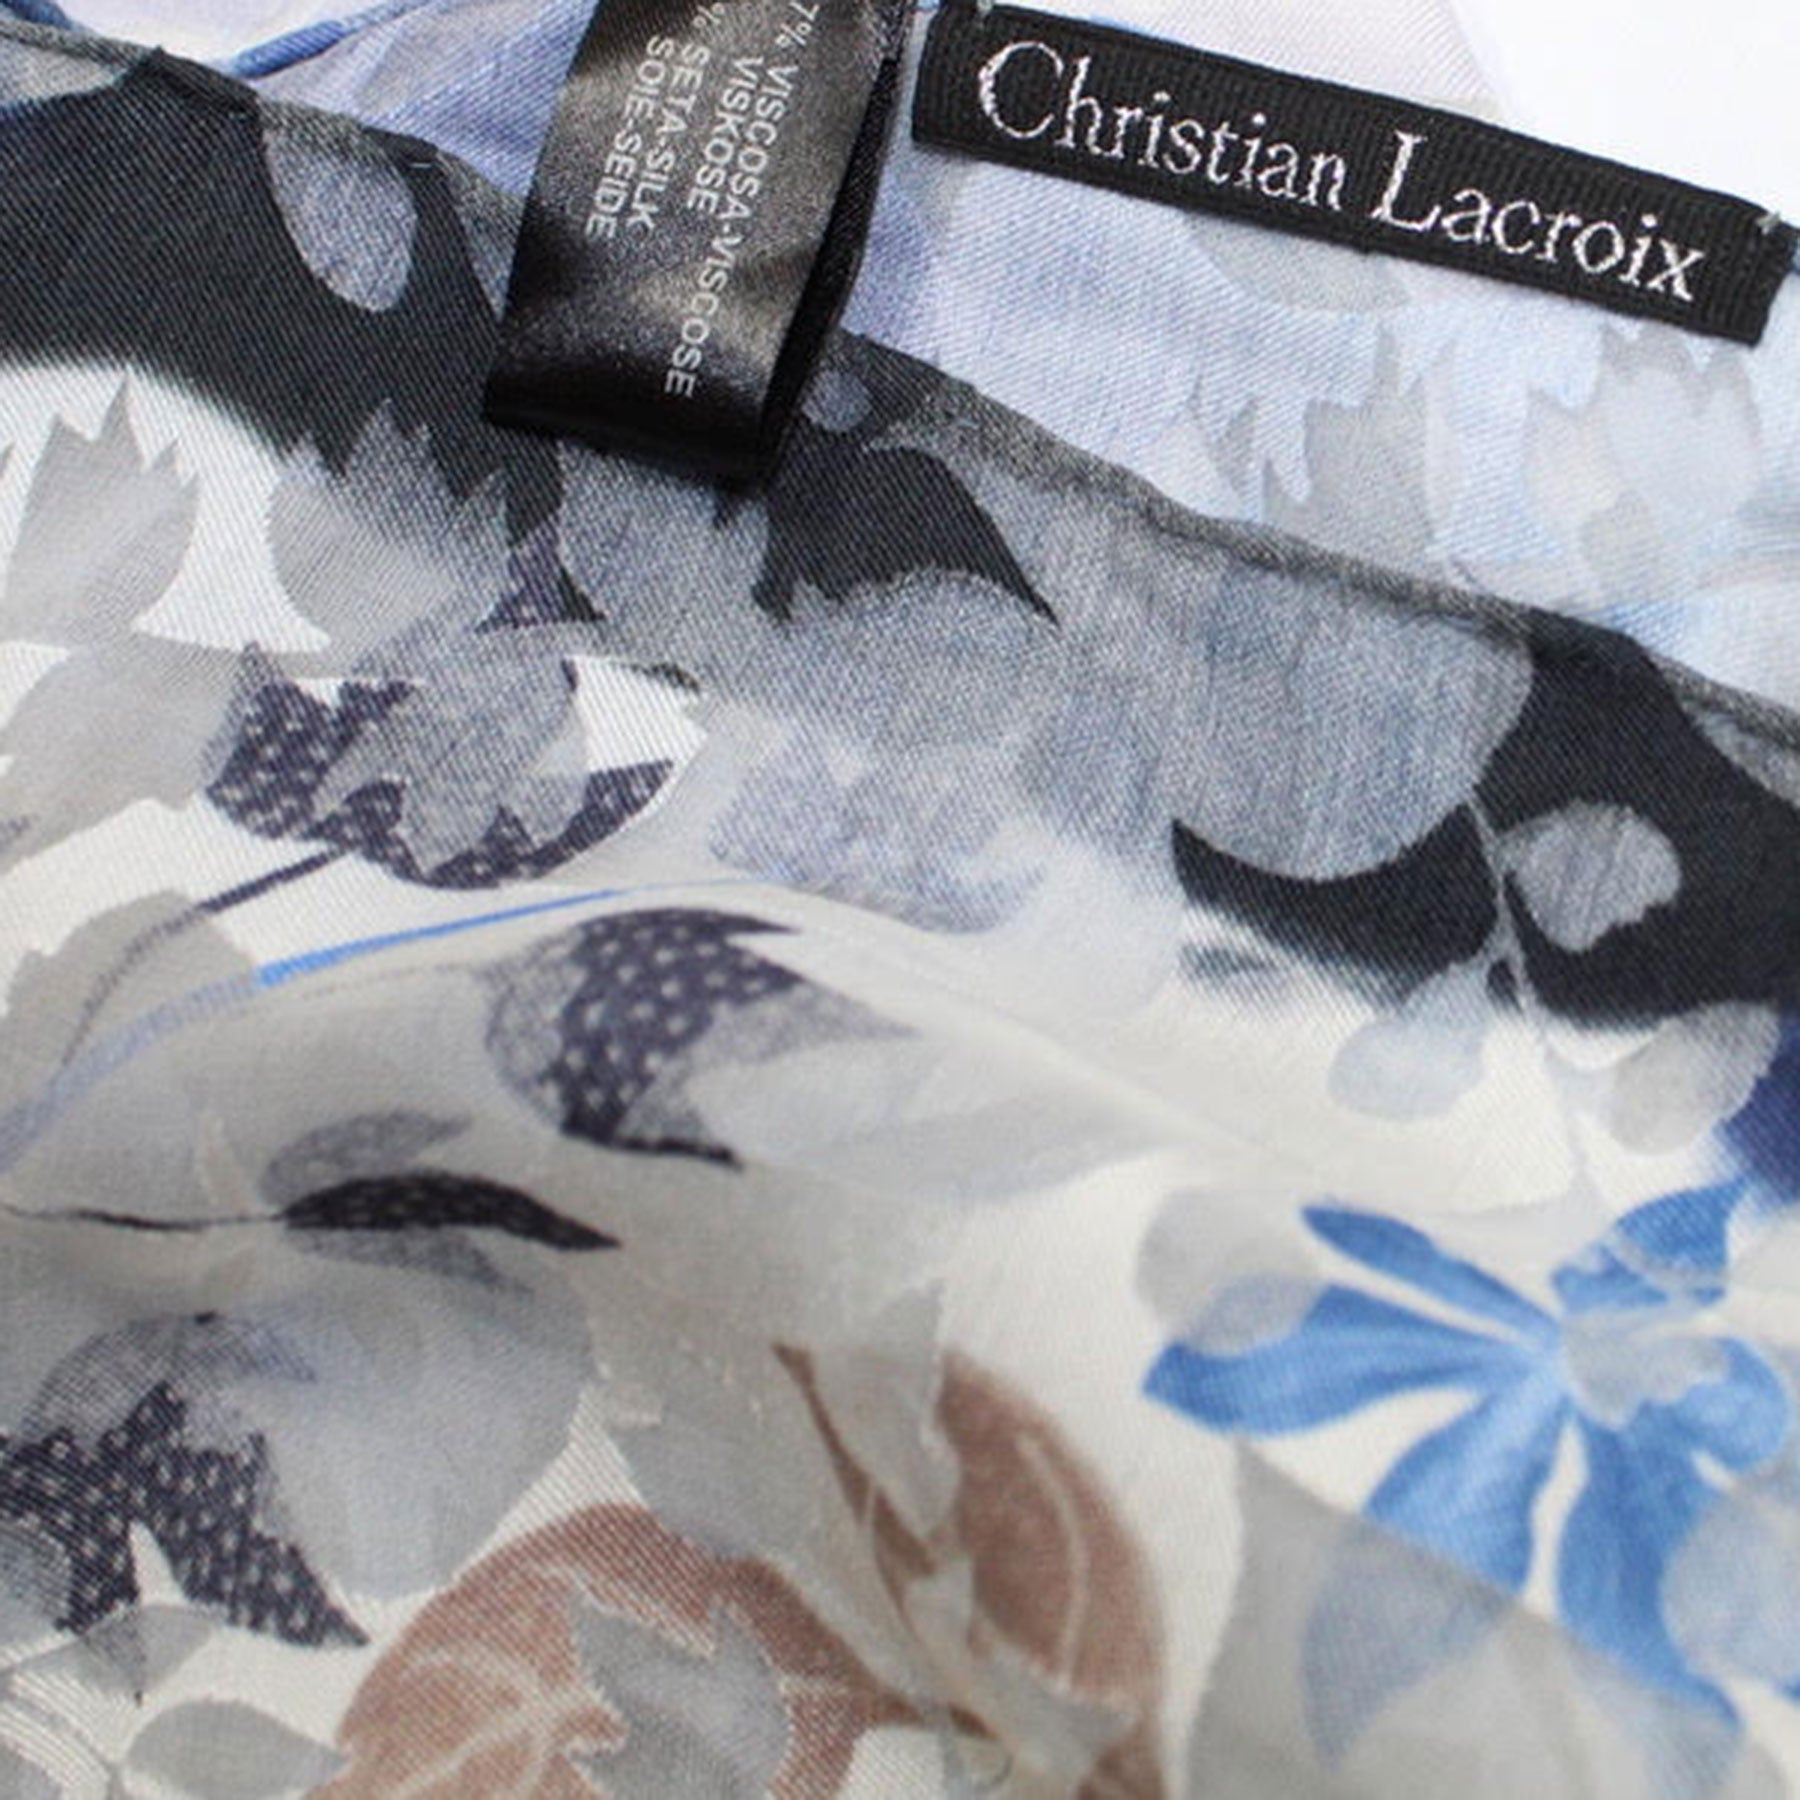 Christian Lacroix Scarf 20 Ans Design Navy Blue Gray Floral - Large Twill Silk Square Scarf